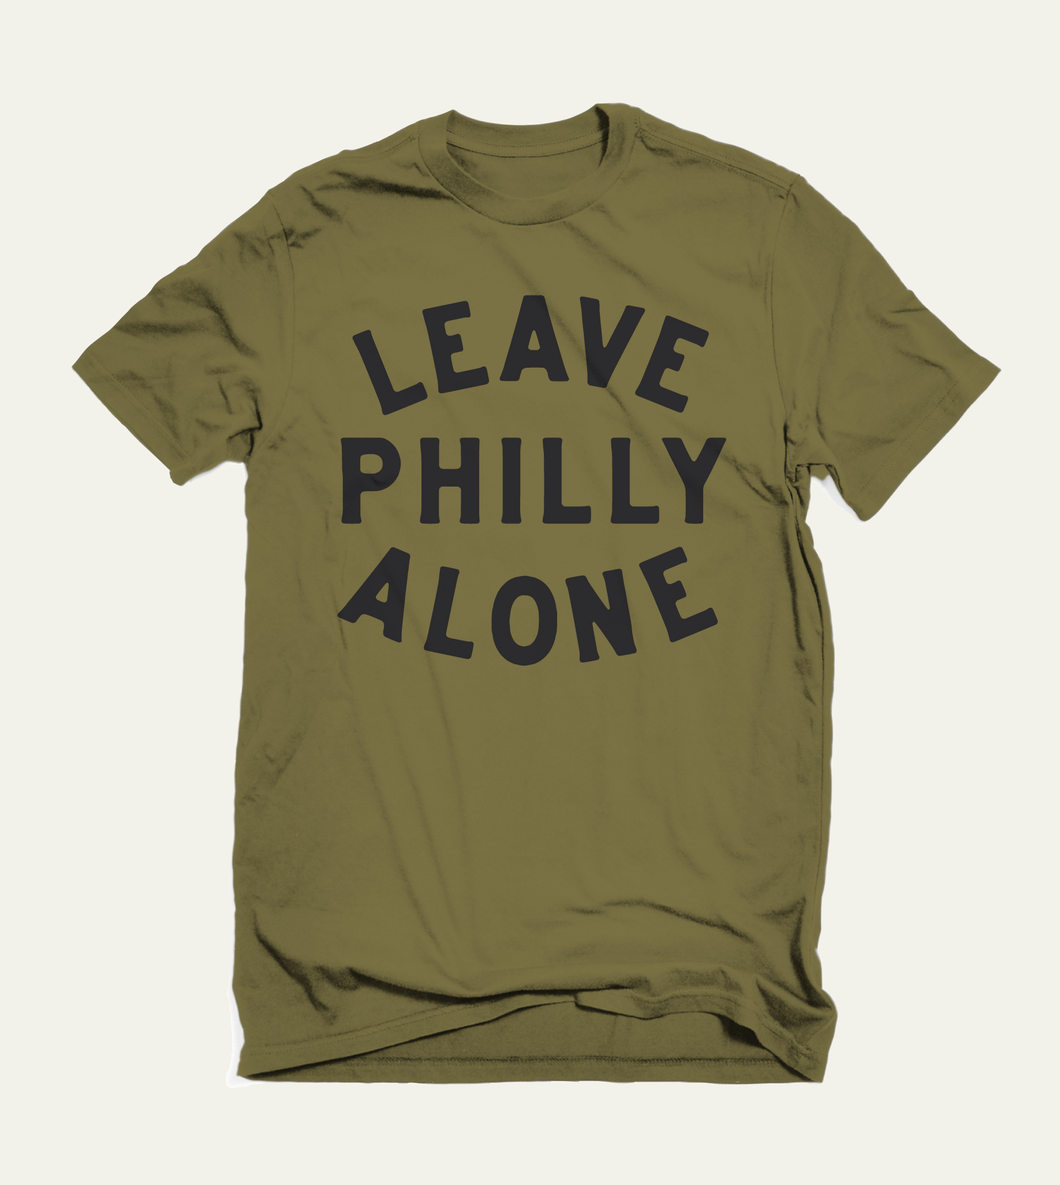 Standard Issue Tee in Olive Drab